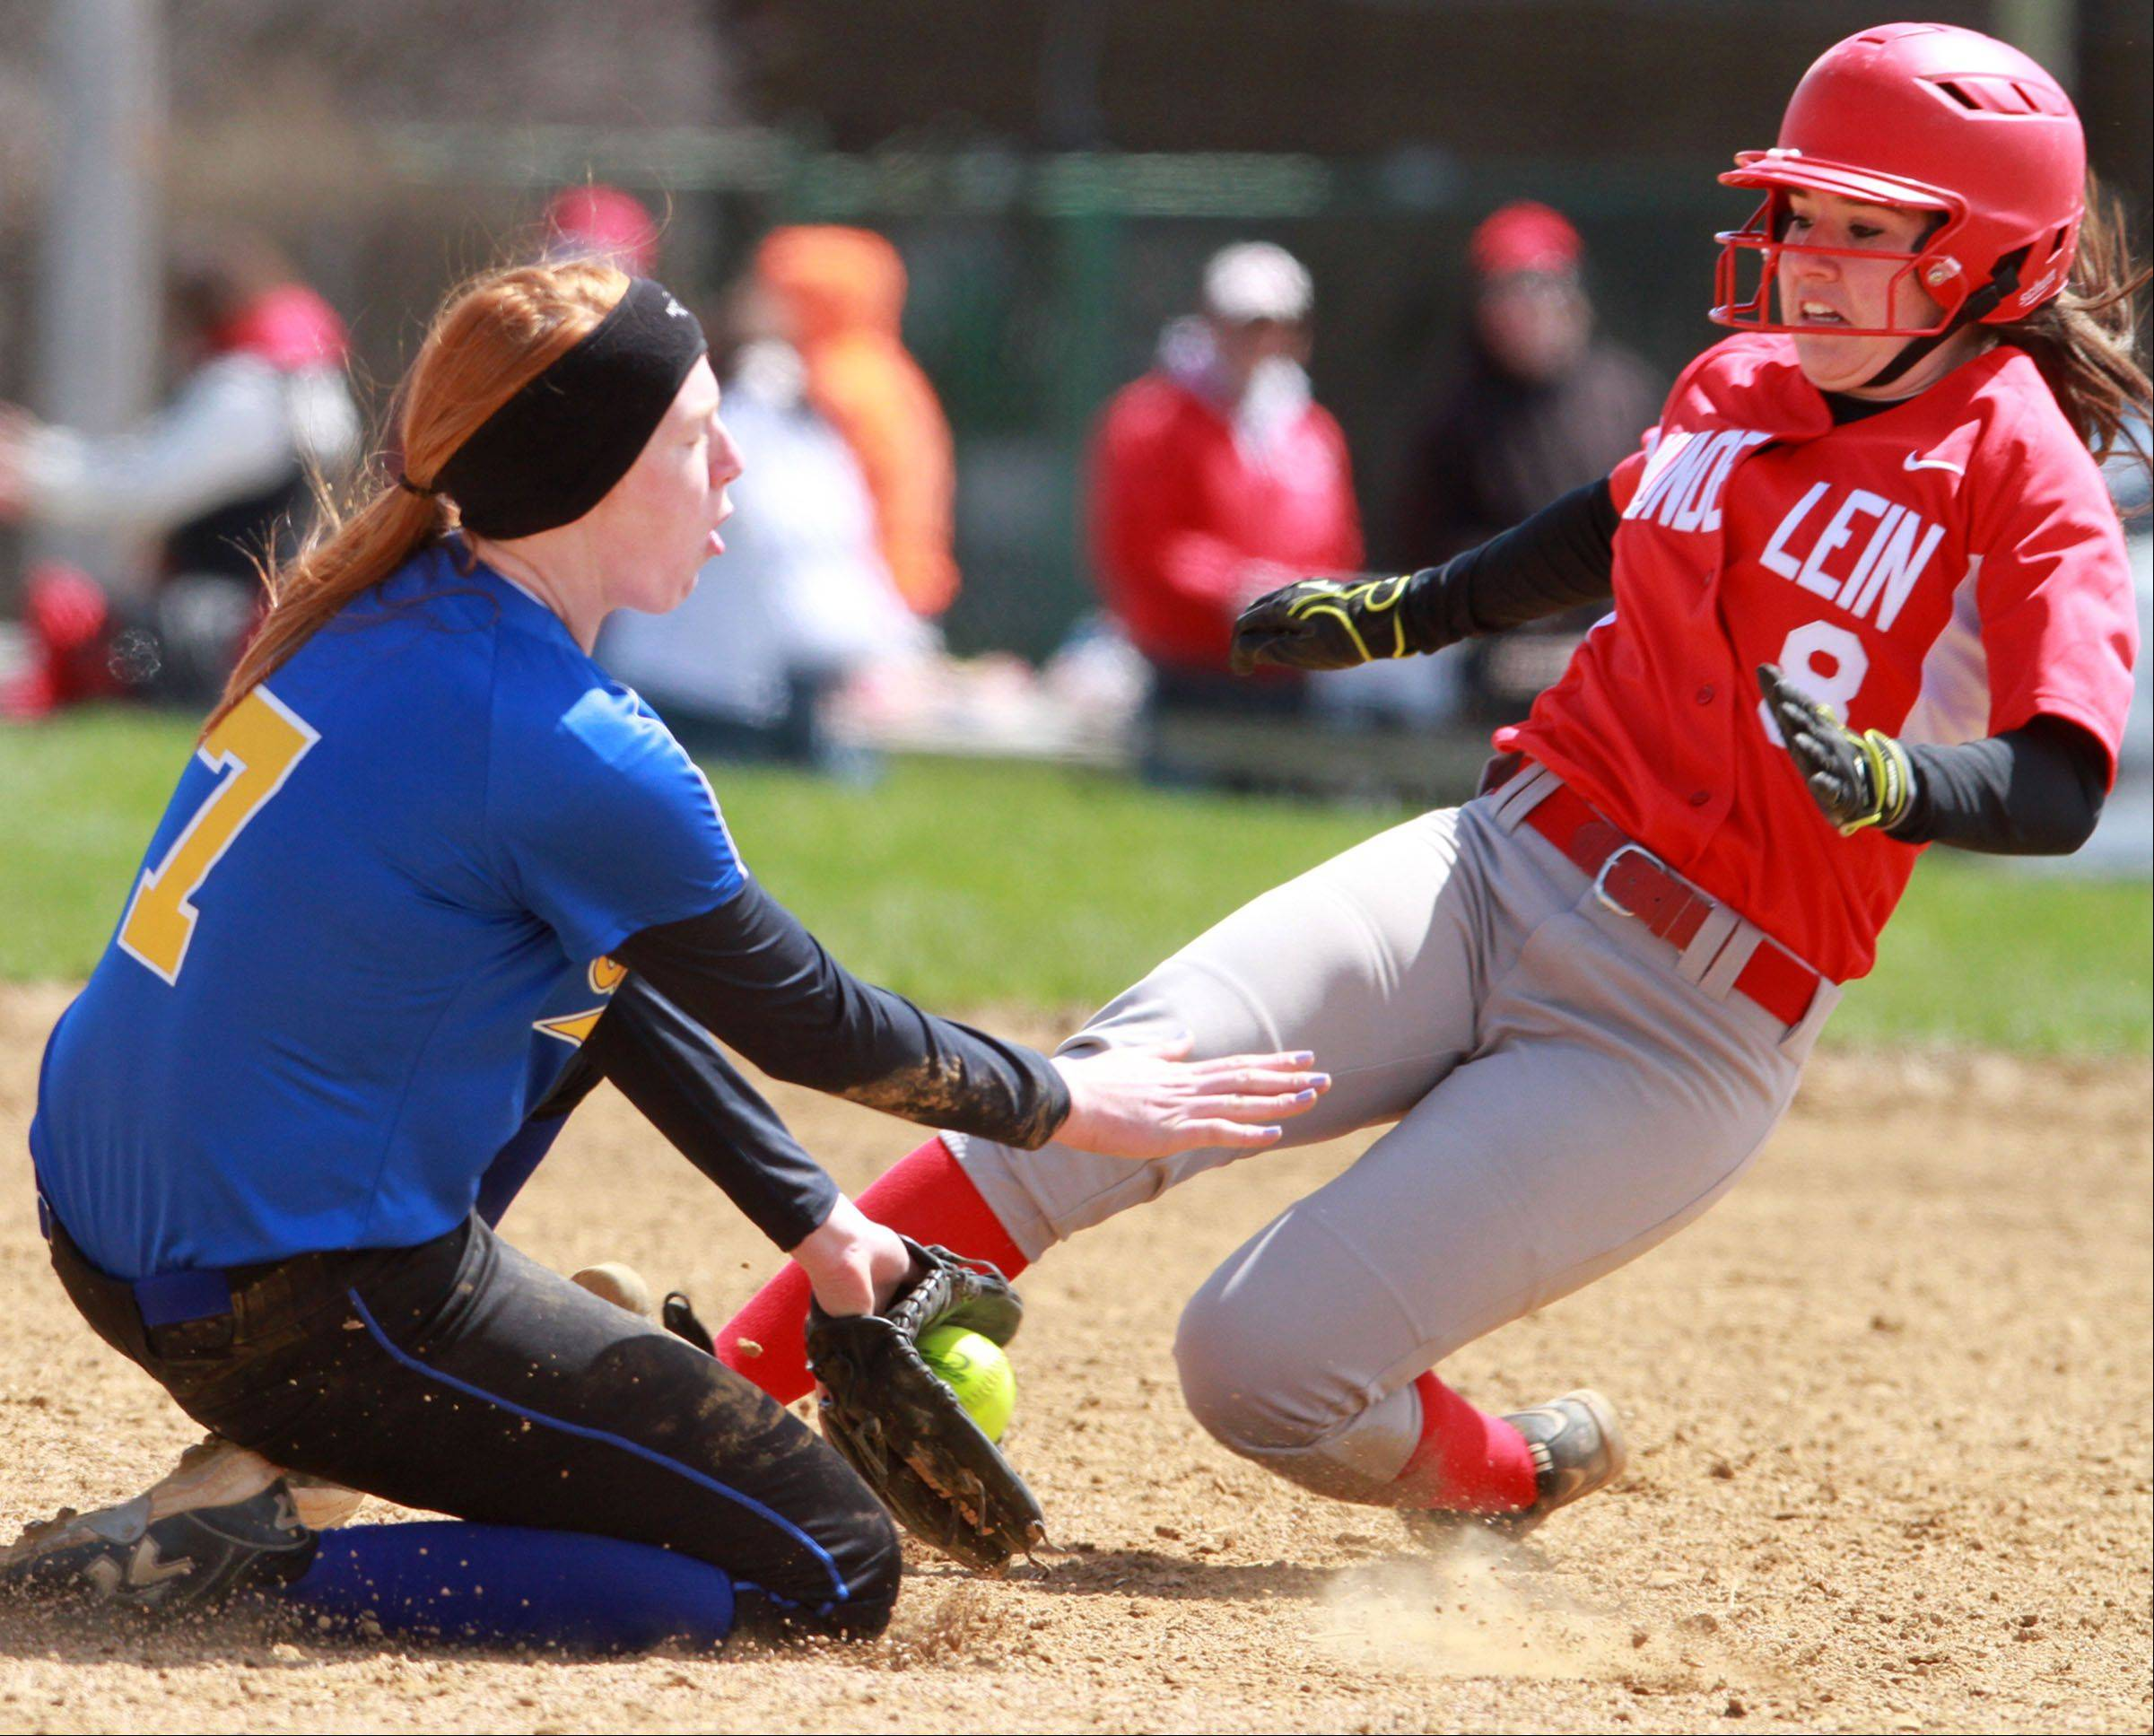 Mundelein's Maddie Zazas slides safely into second base past Johnsburg's Carly Wilson in Mundelein on Saturday.